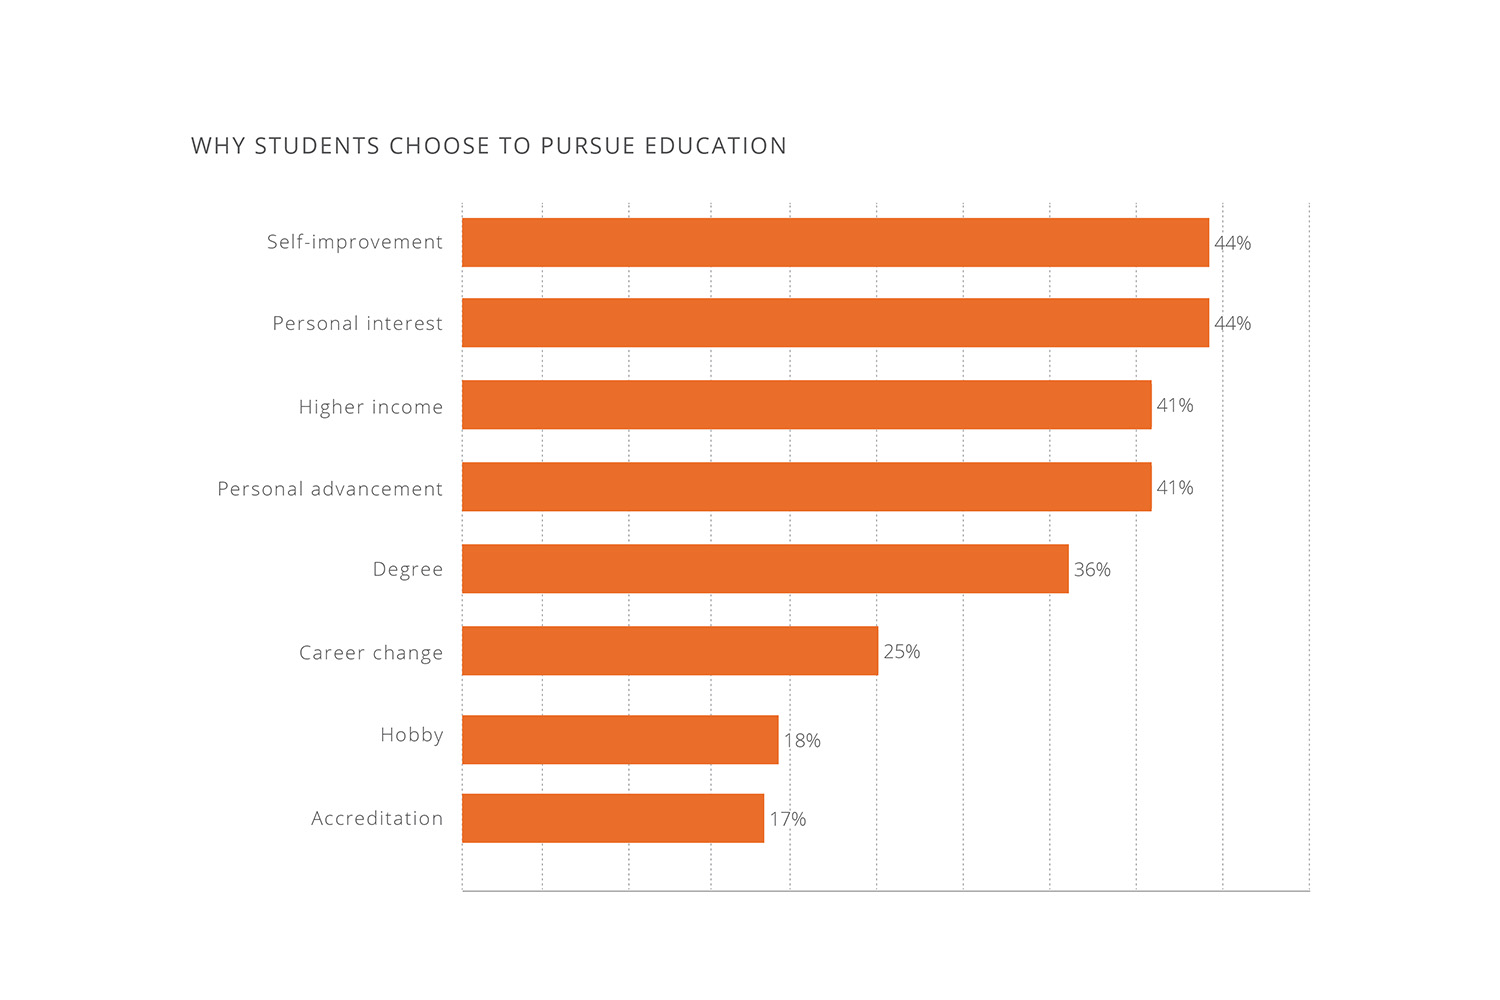 Why education seekers pursue an education